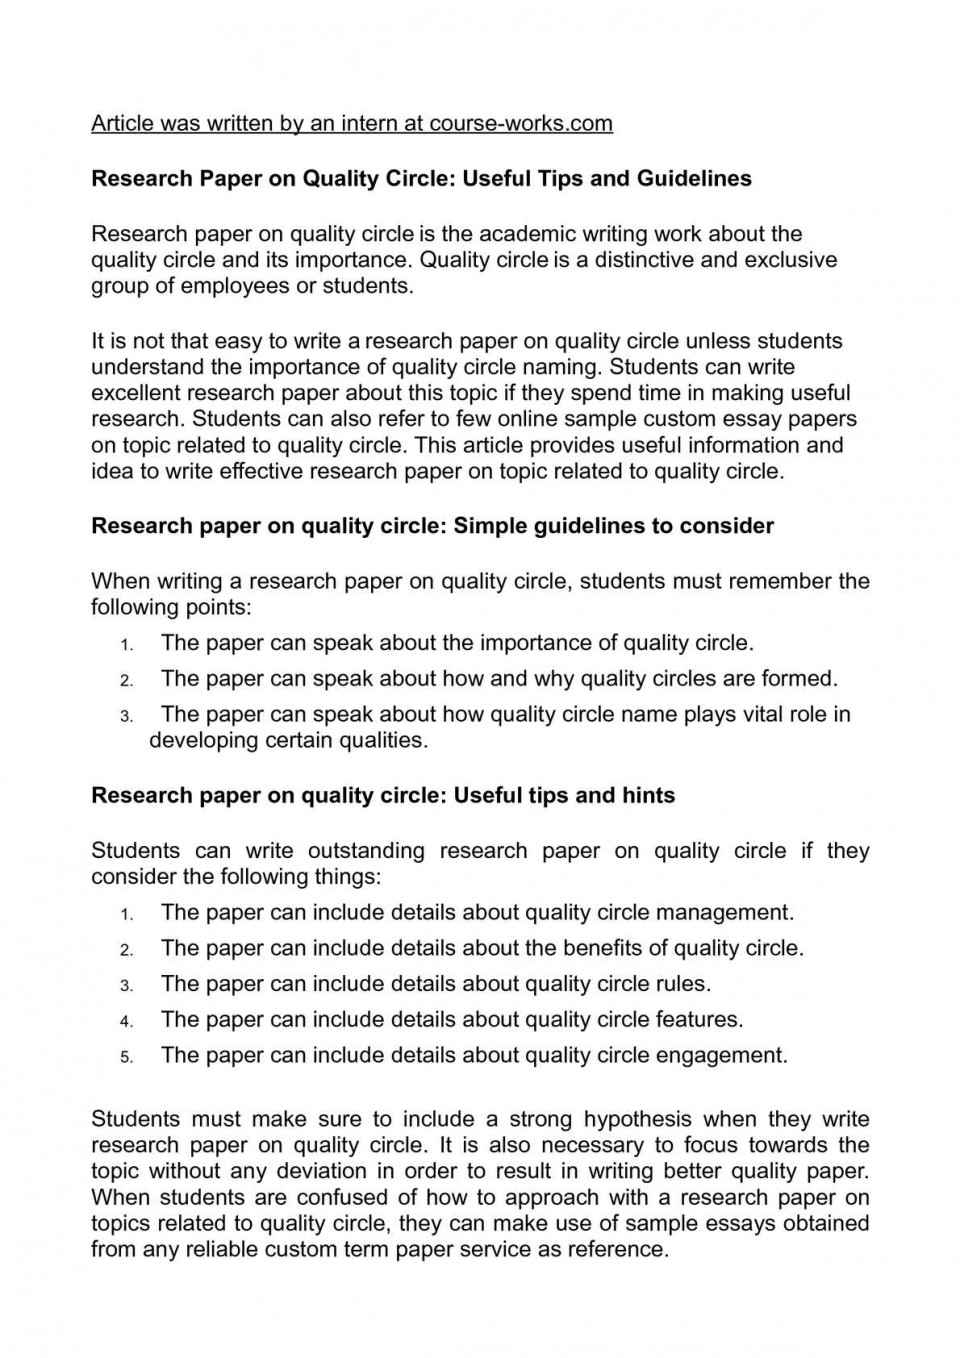 007 P1 Topics To Write Research Paper Beautiful On A History Economics Biology 960